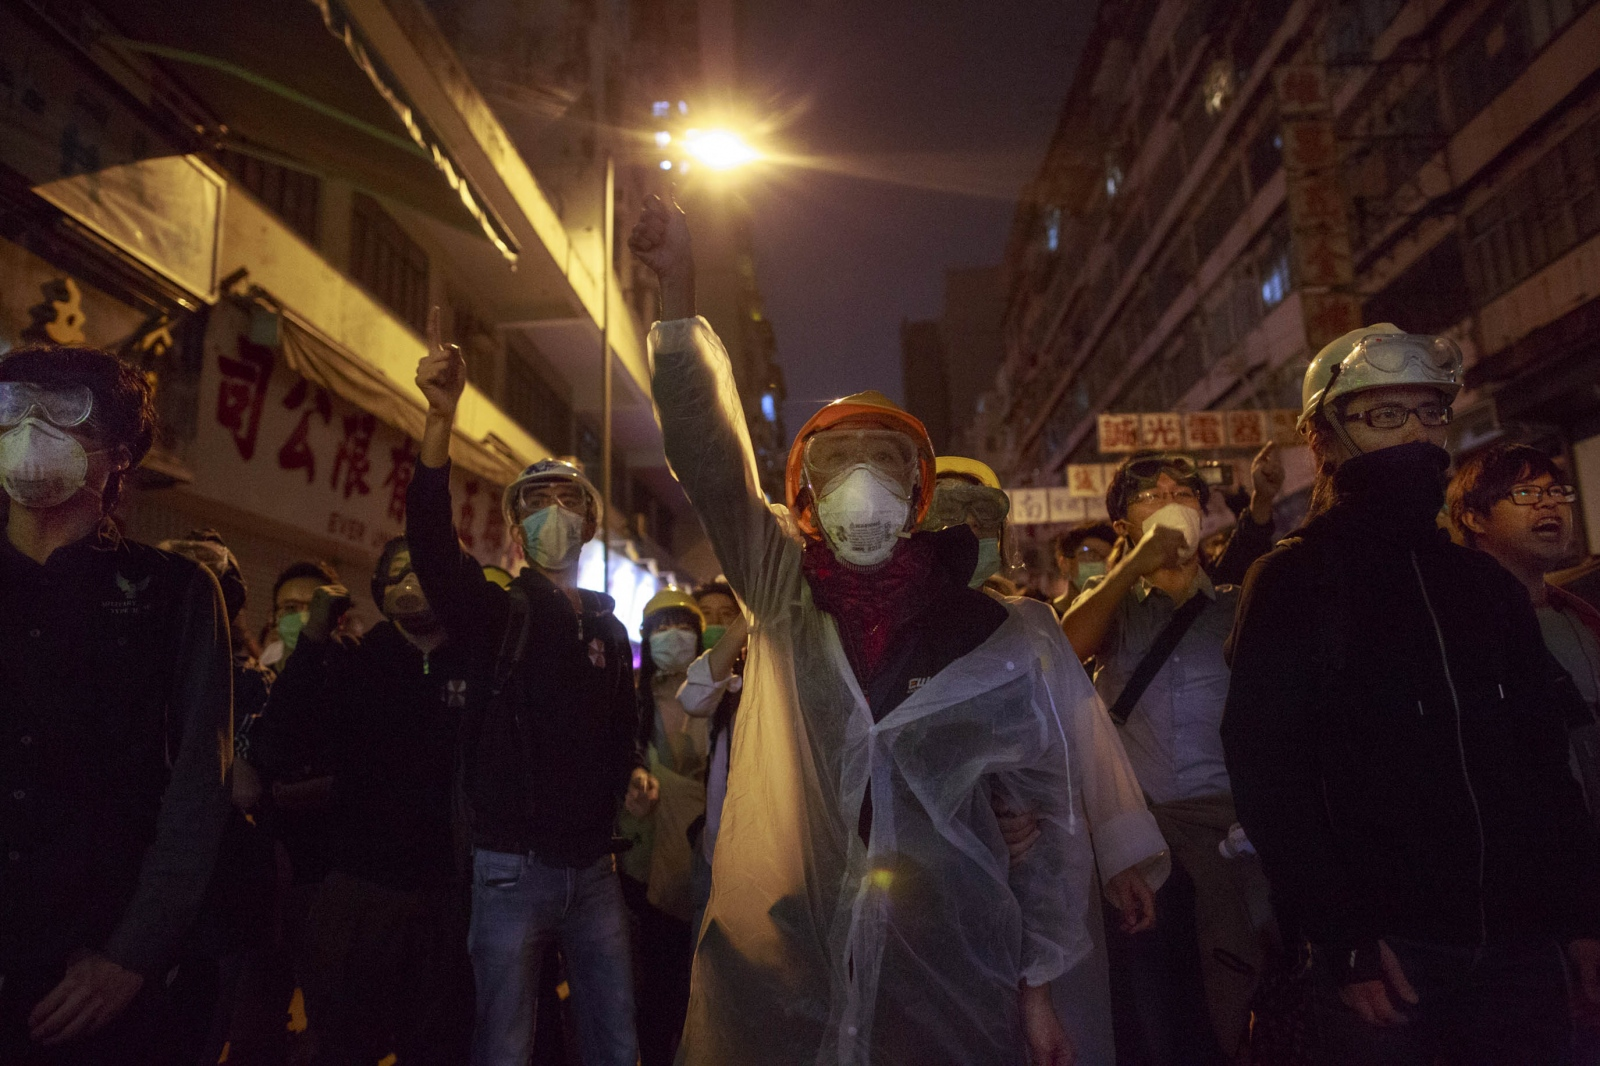 Protesters chant slogans calling for universal suffrage, during a night of confrontation with the police in the Mong Kok district of Hong Kong, on November 25, 2014.